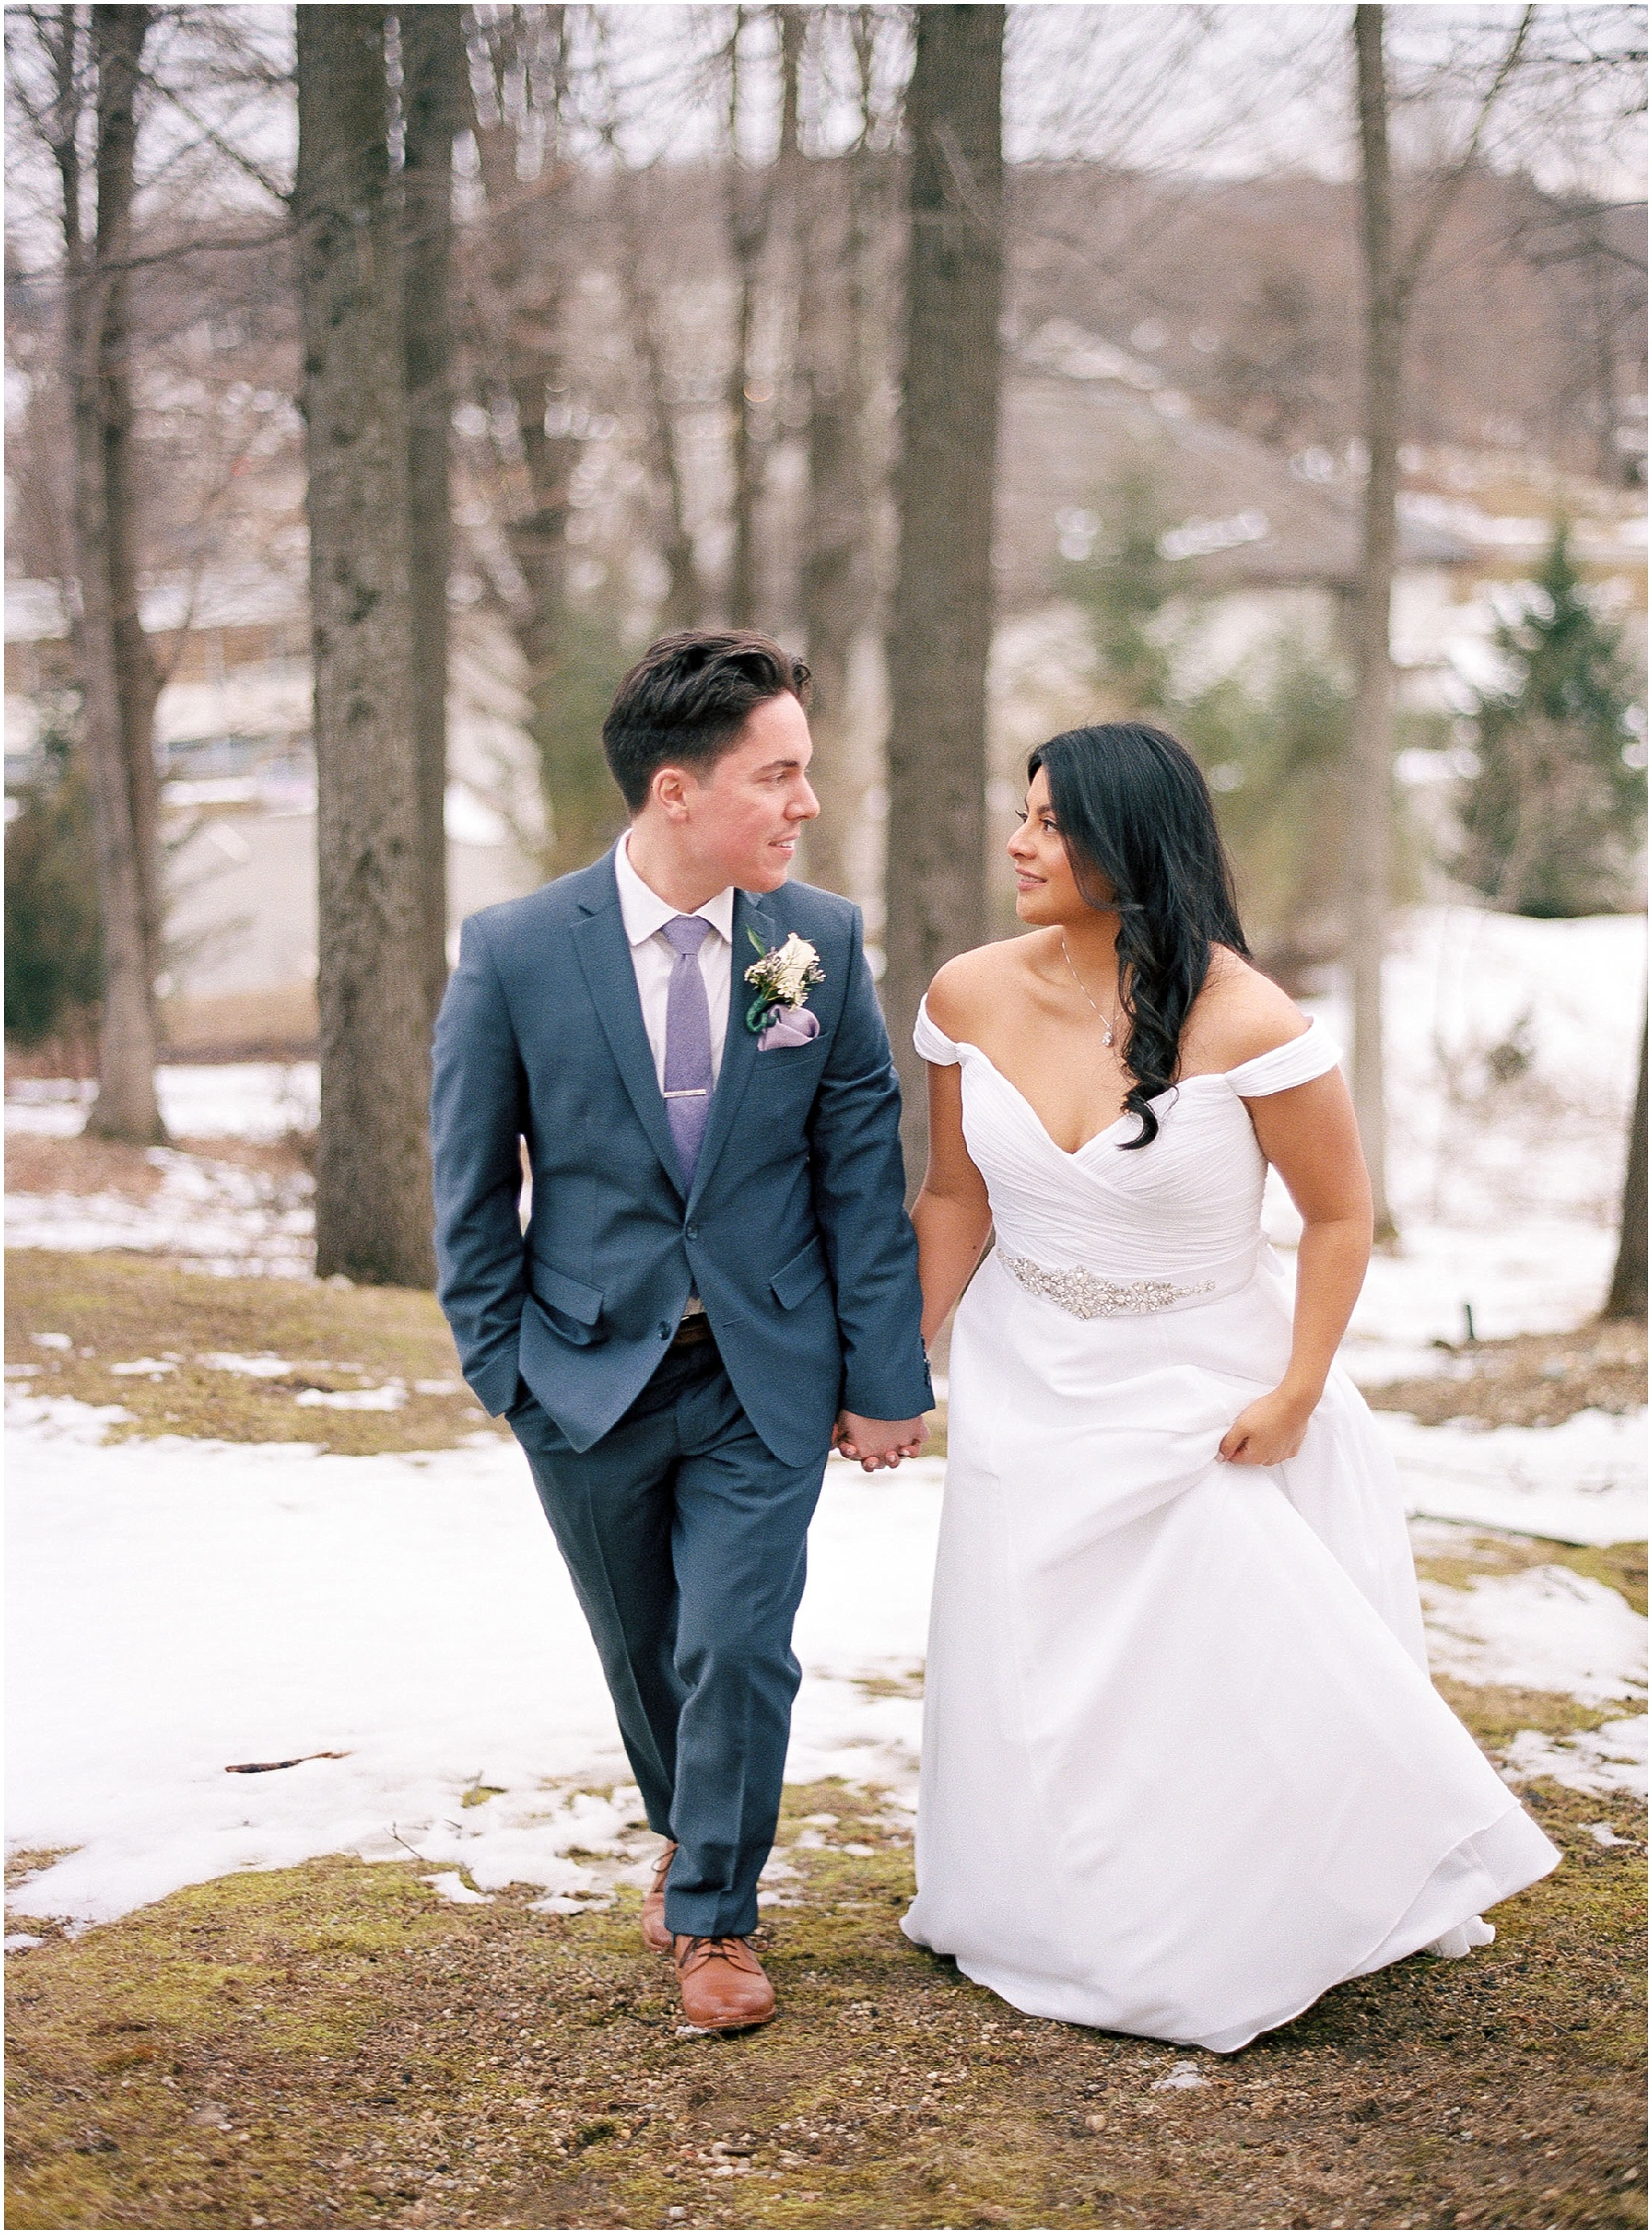 bride and groom portraits for an intimate wedding in the mountains on northern New Jersey, walking in the woods, shot on photographic film, portra 400, contax camera, elopement